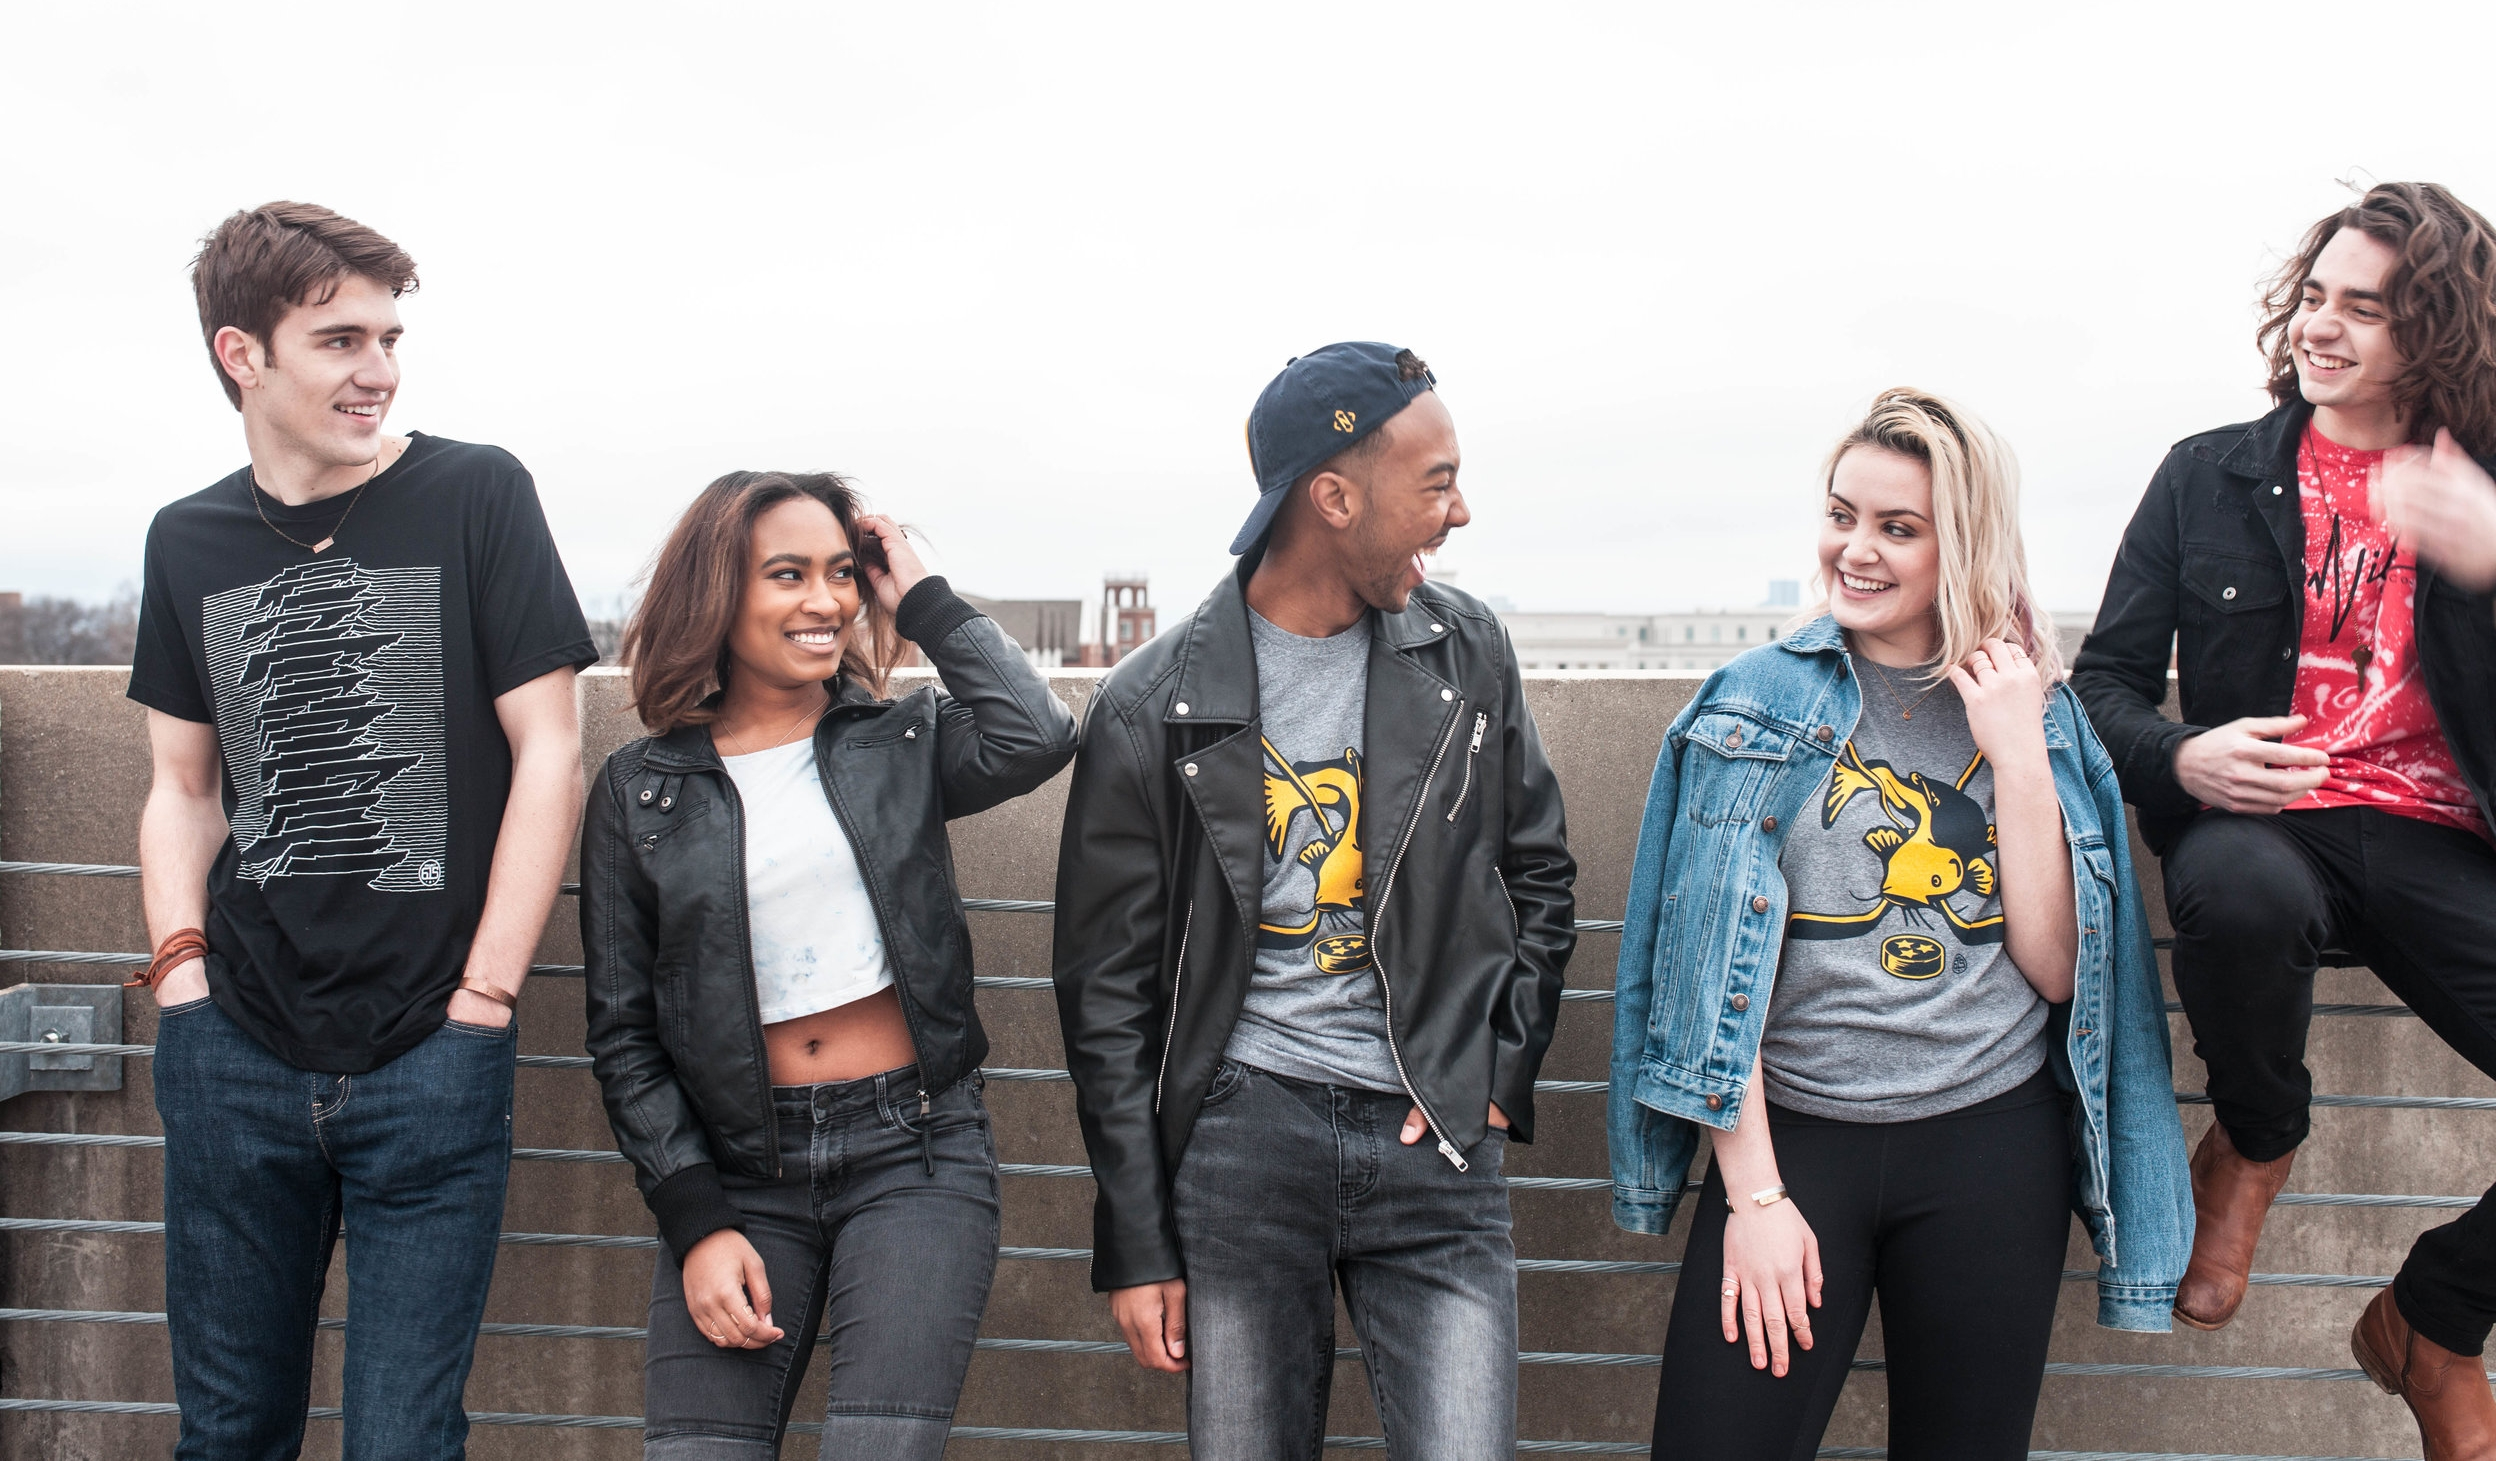 Photographer: Christy Hunter https://www.authenticphotosbychristy.com  Models (left to right): Evan Ward, Gabby Henson, David Andrew, Megan Matuszak, Harrison Baldwin